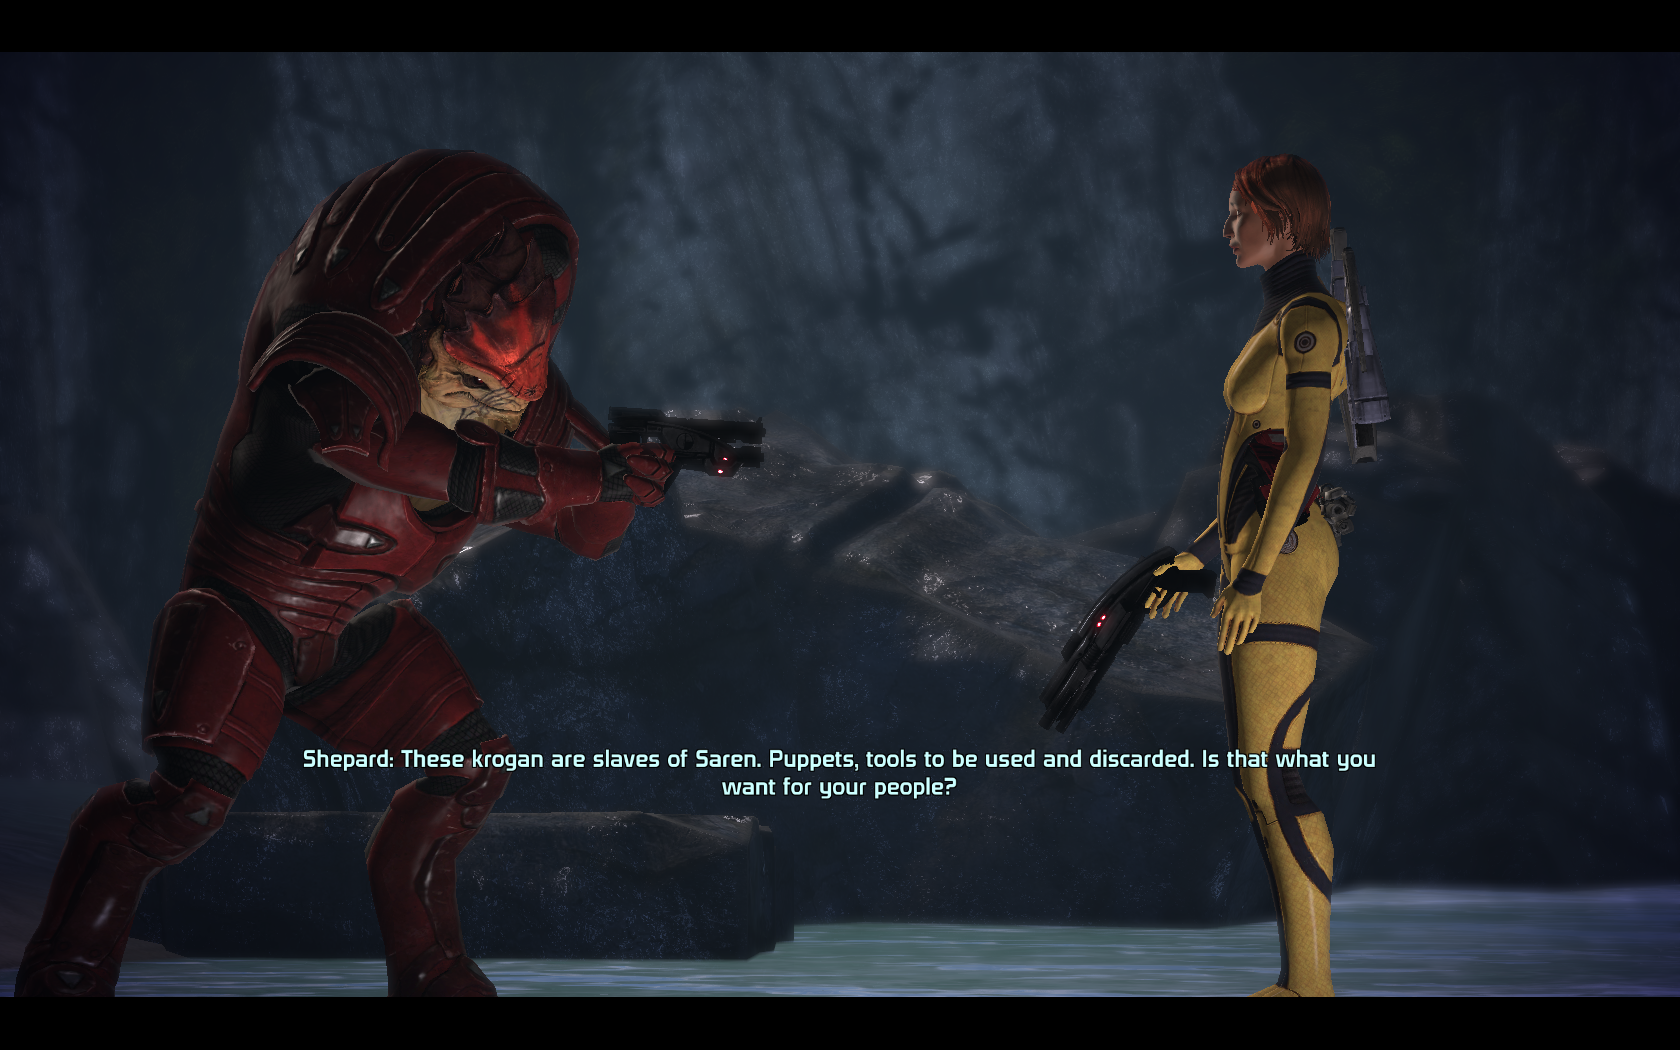 Mass Effect Wrex Picture 2 by OldSunday on DeviantArt